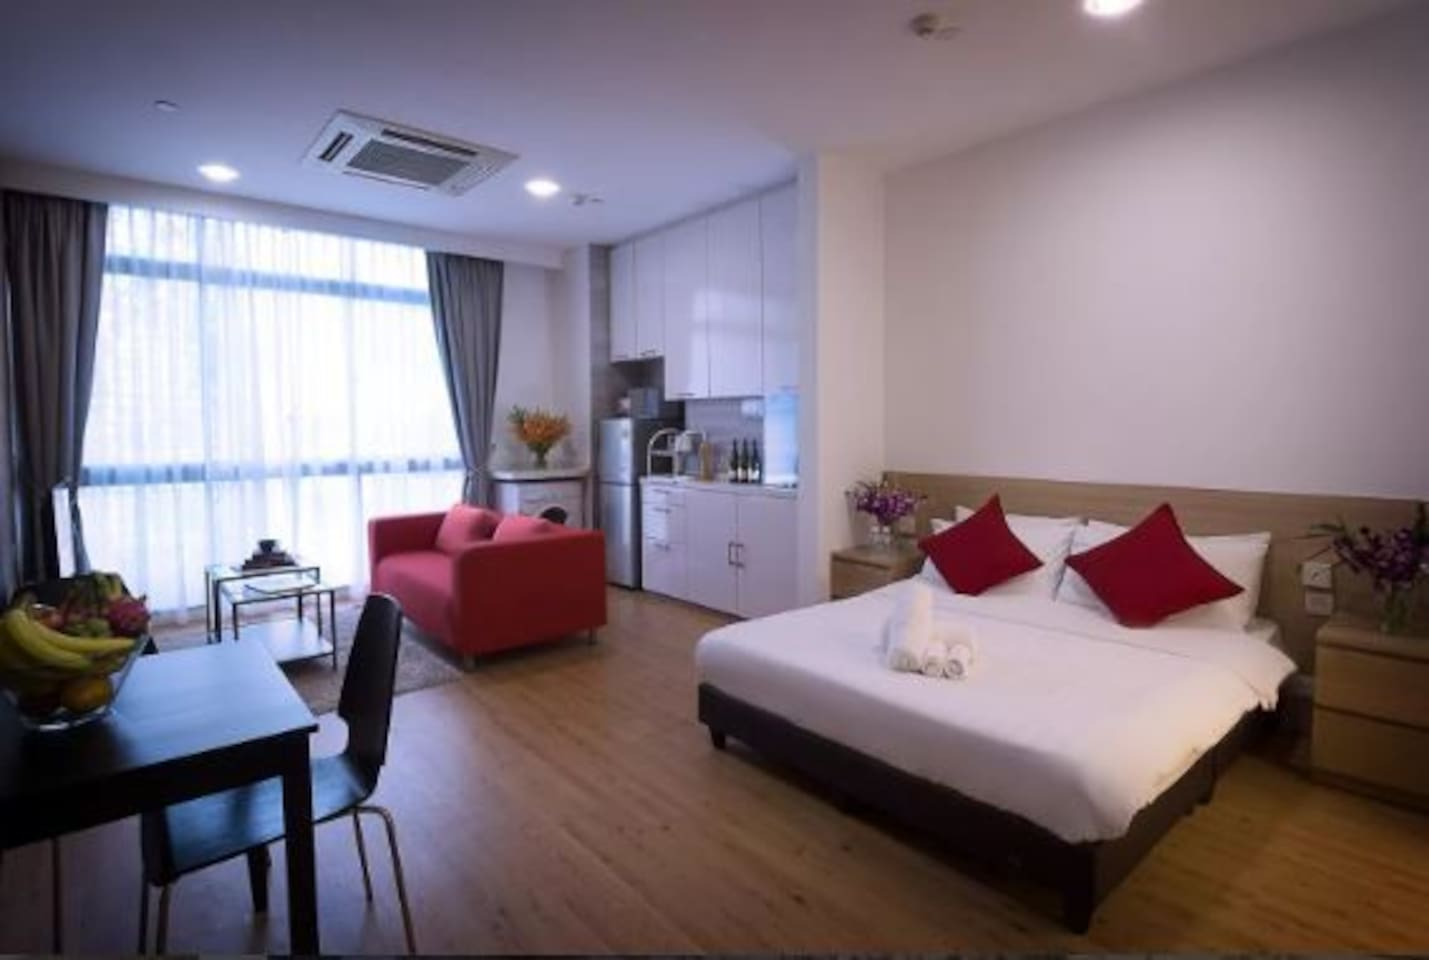 luxury serviced apartment in orchard near subway1 serviced